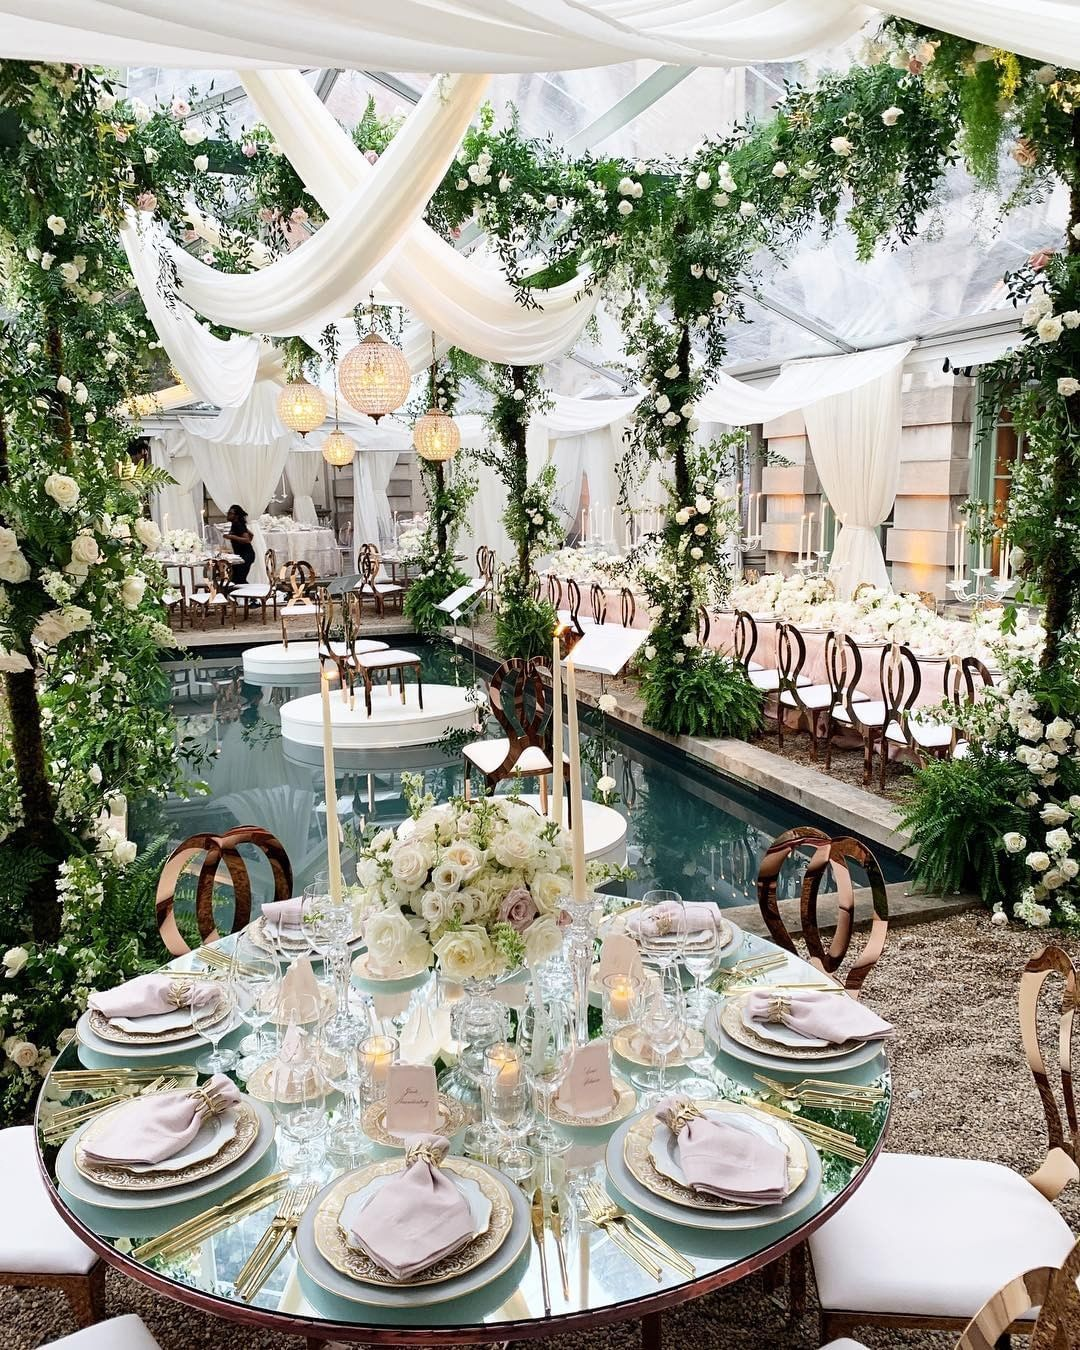 Pool At The Wedding What Can Be Better Show Us Your Love Ph Abbyjiu Planning Design Wedding Table Centerpieces Christmas Dining Room Wedding Table